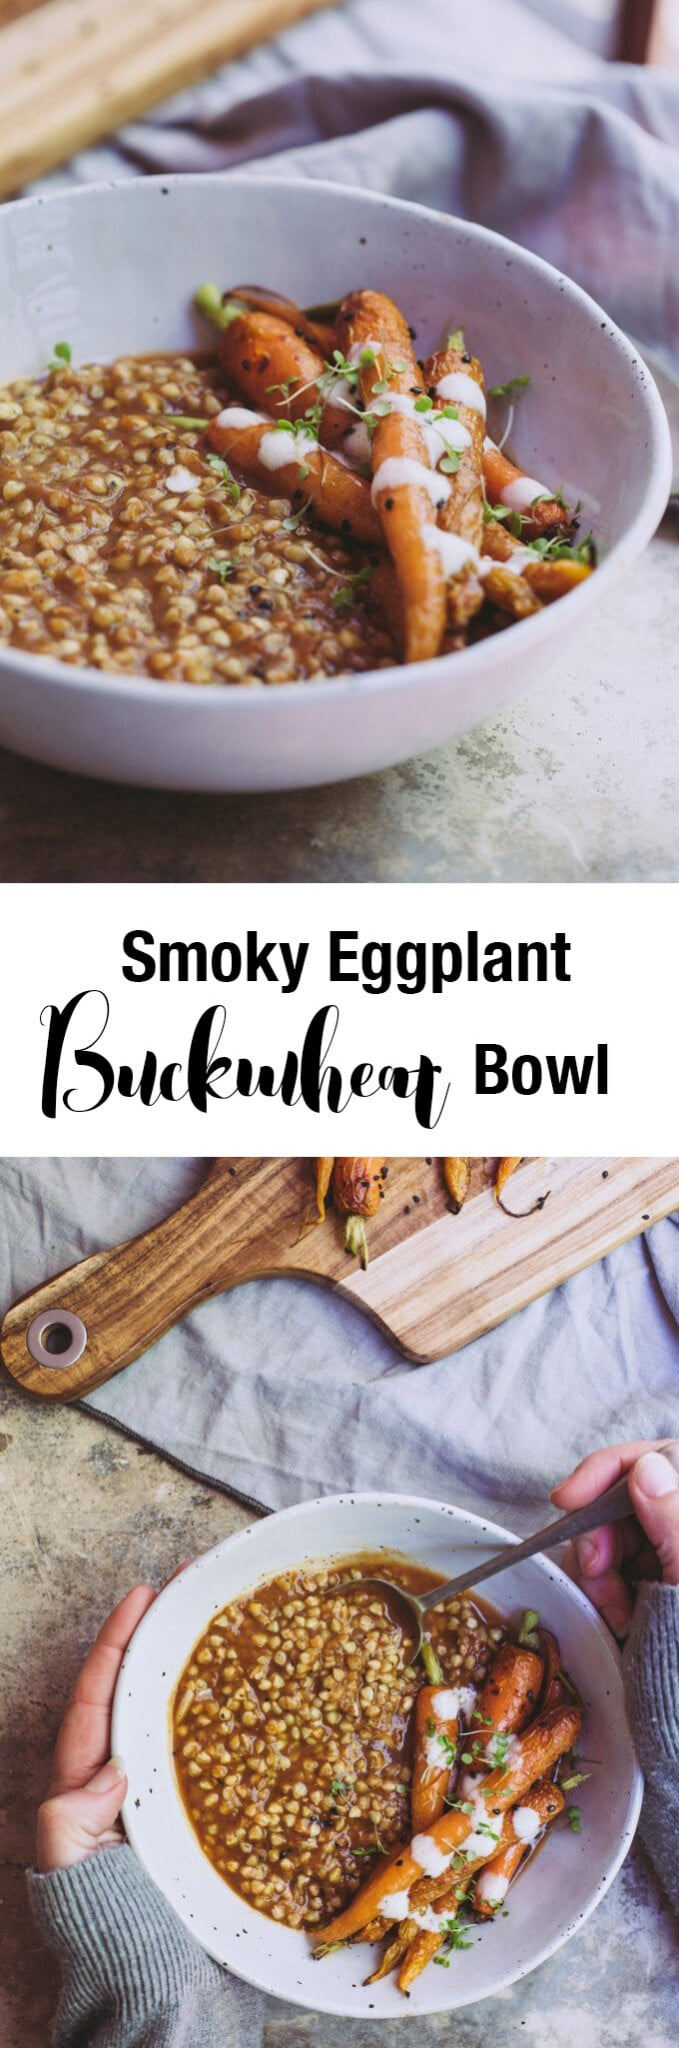 smoky-egplant-buckwheat-bowl-pin